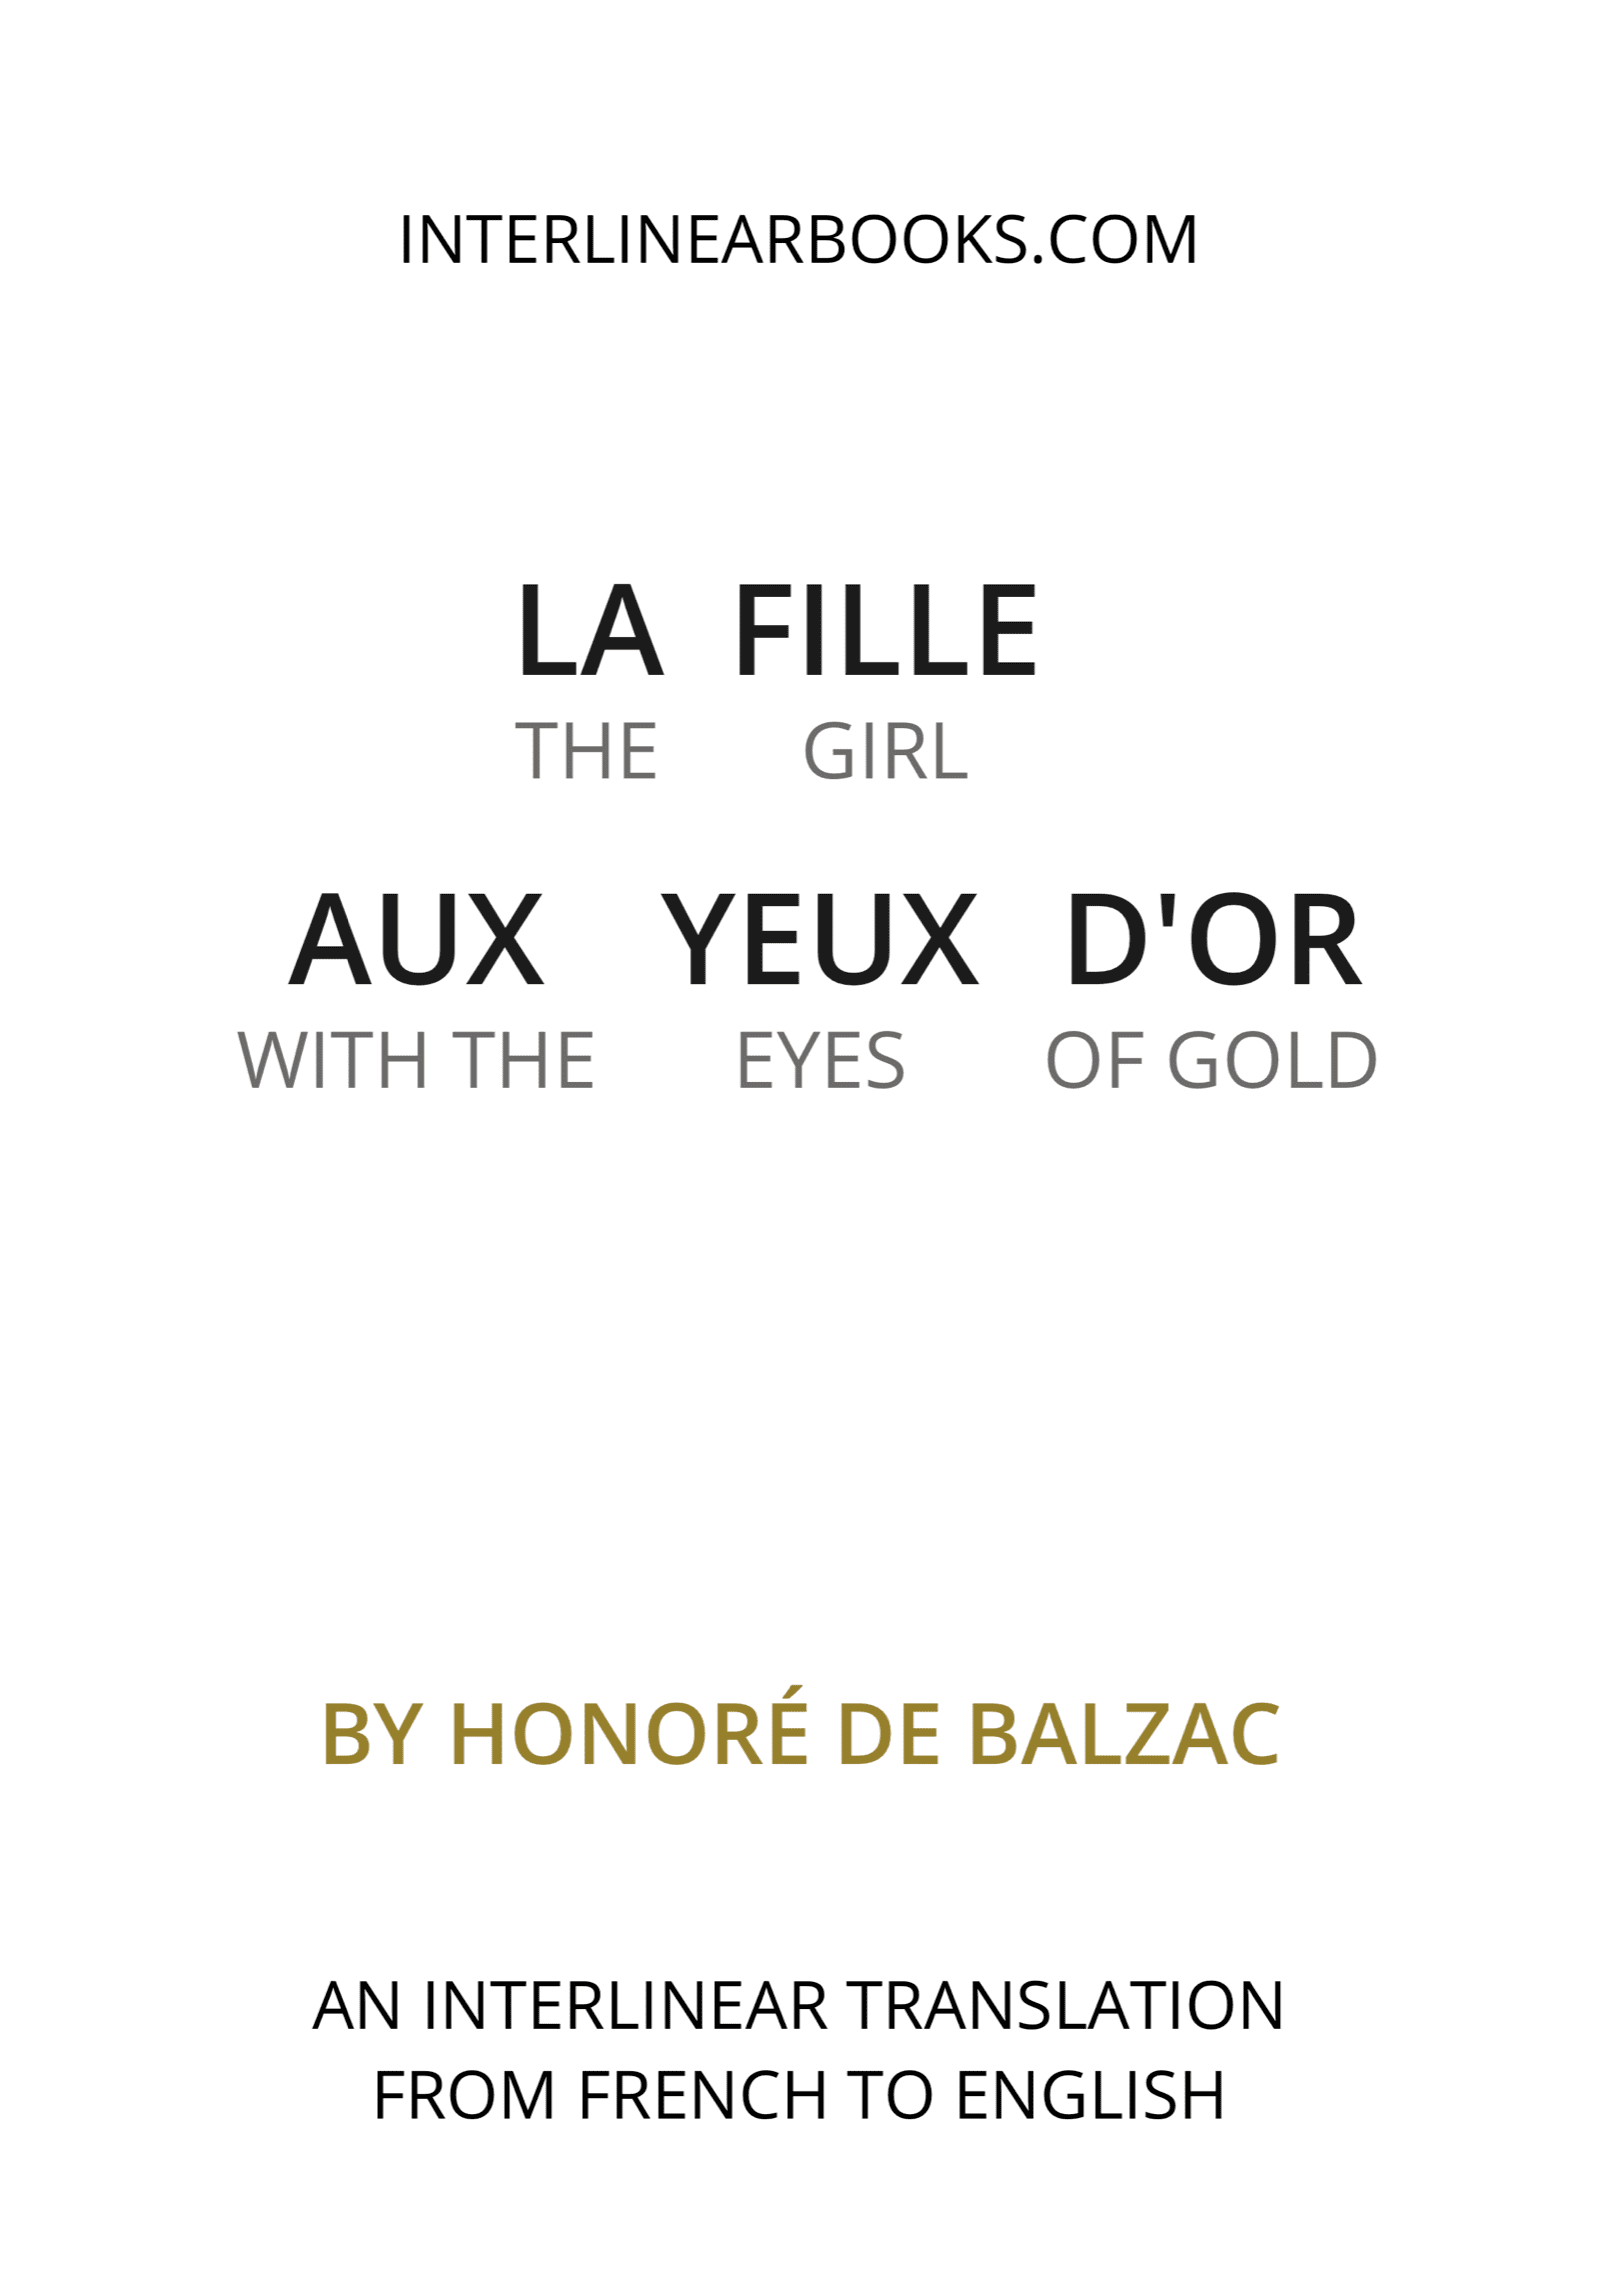 French book: La fille aux yeux d'or / The Girl With The Golden Eyes